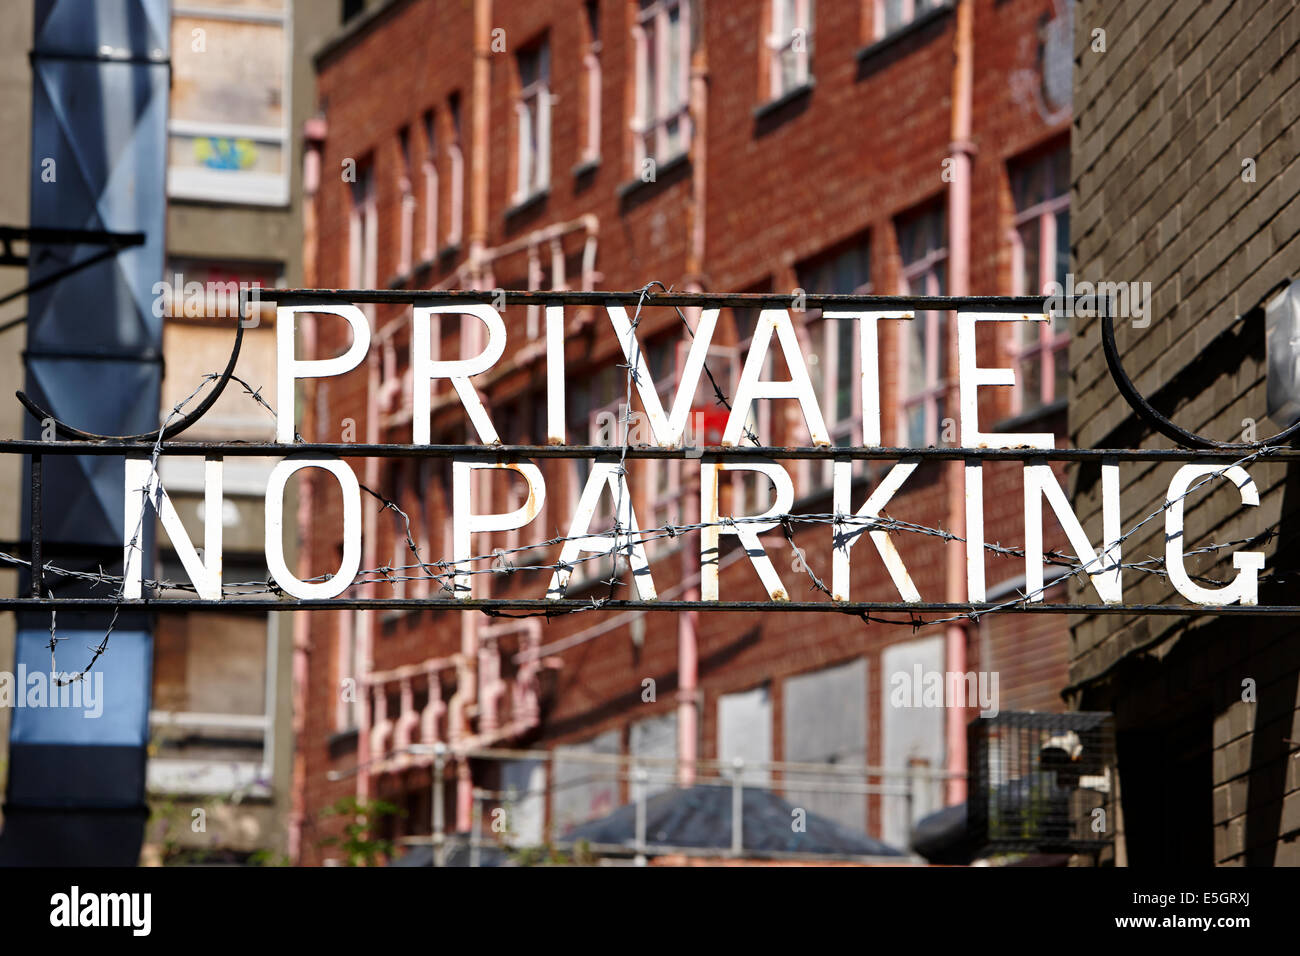 private no parking sign wrapped in barbed wire in a city centre in the uk - Stock Image